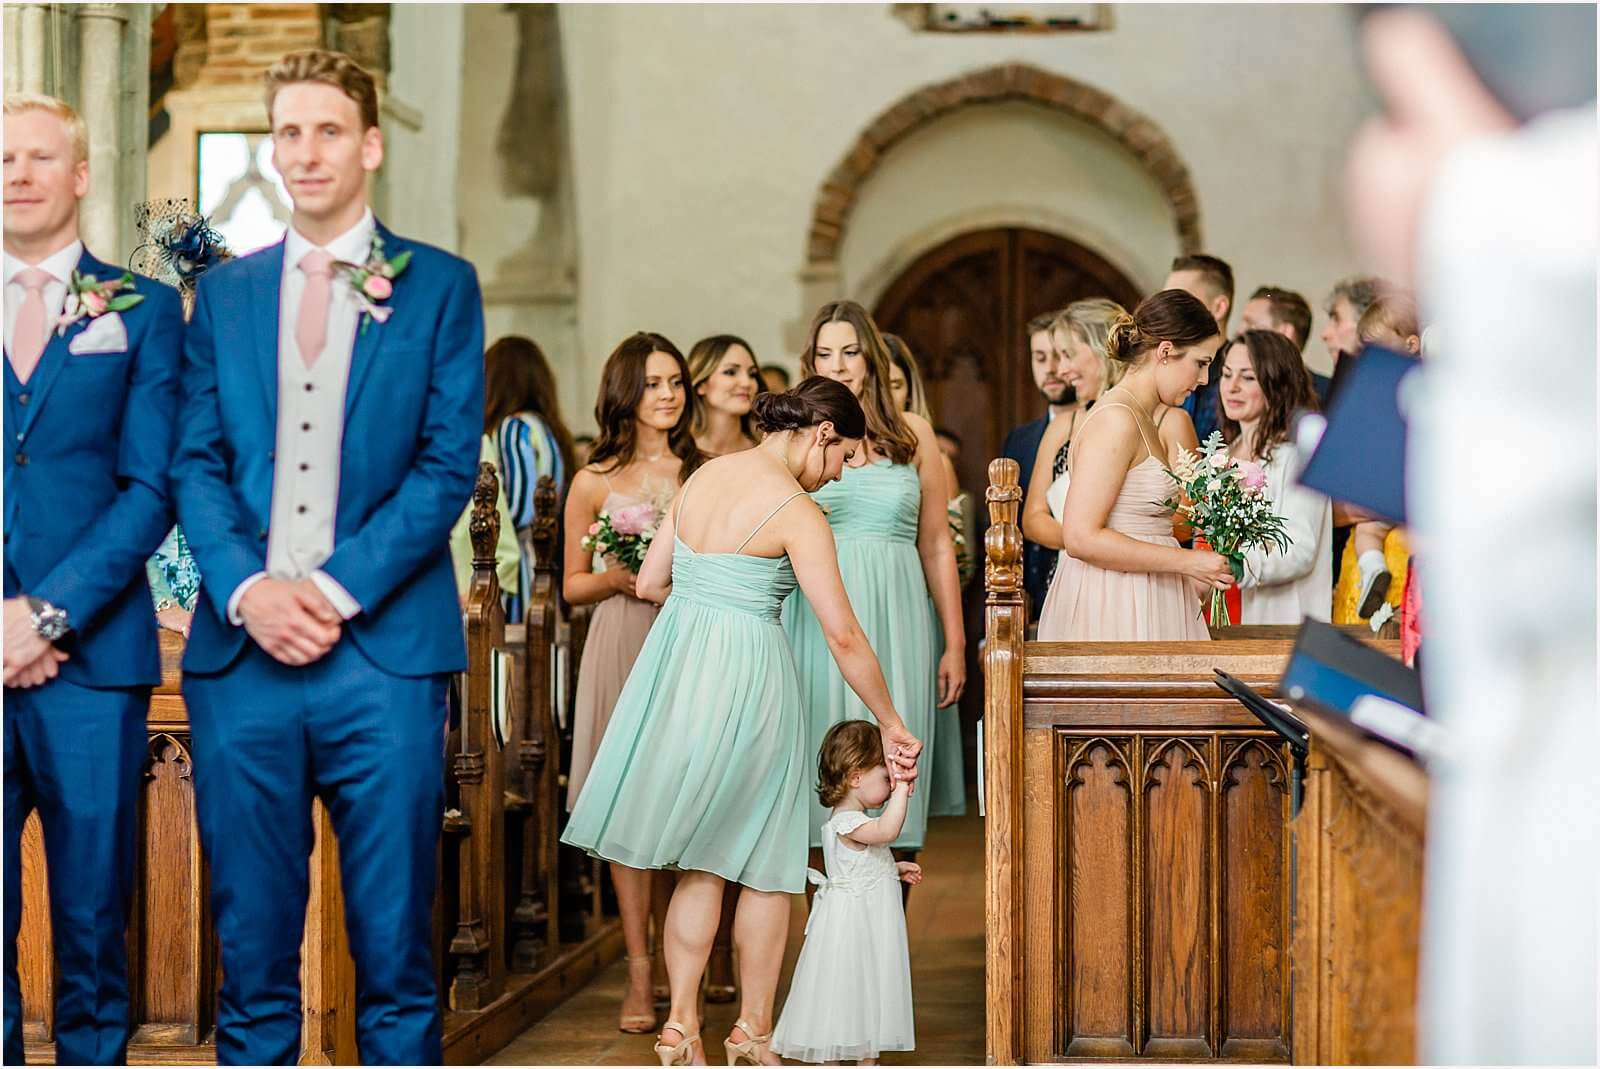 Polstead Church Wedding | Carla & Toby 25